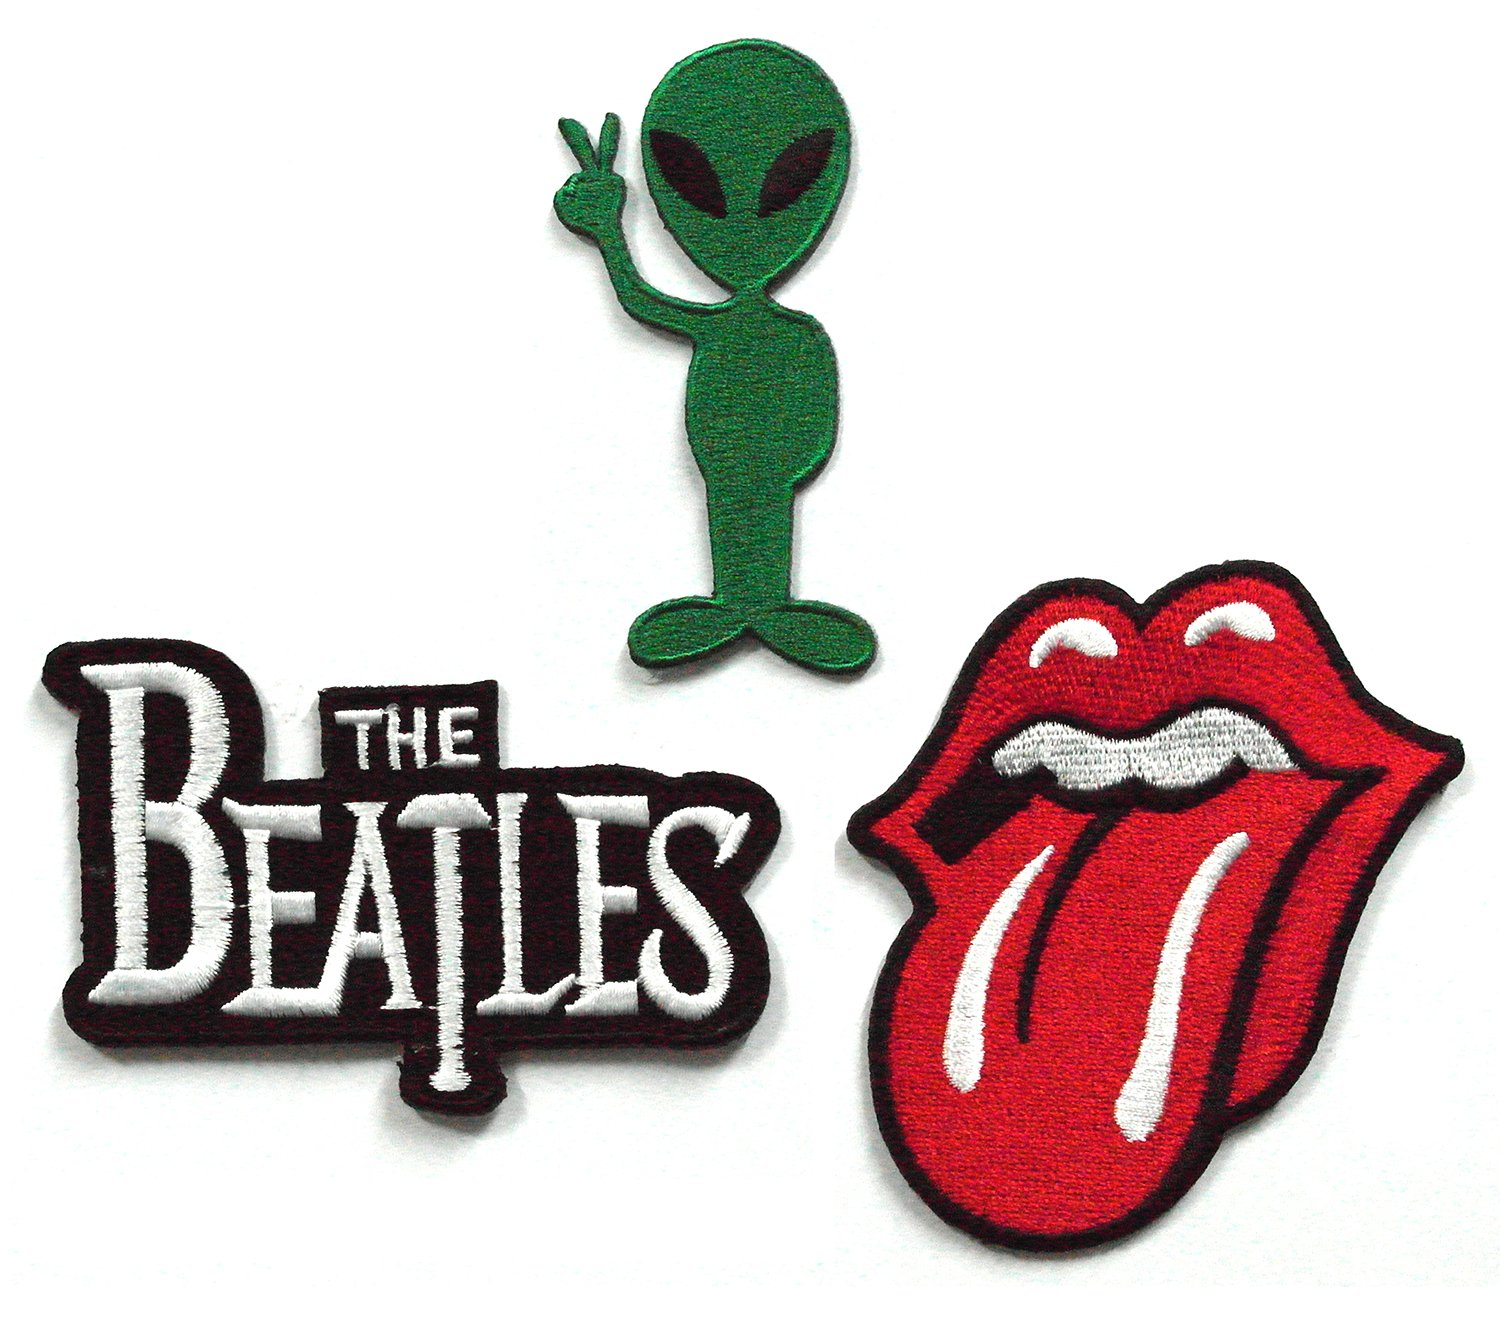 Set_ROCK006 - Alien Patch Iron On, The Beatles Band Patches and Rolling Stone Tongue Patches, 3 Pcs Heavy Metal Patches, Applique Embroidered Patches - Rock Band Iron on Patches